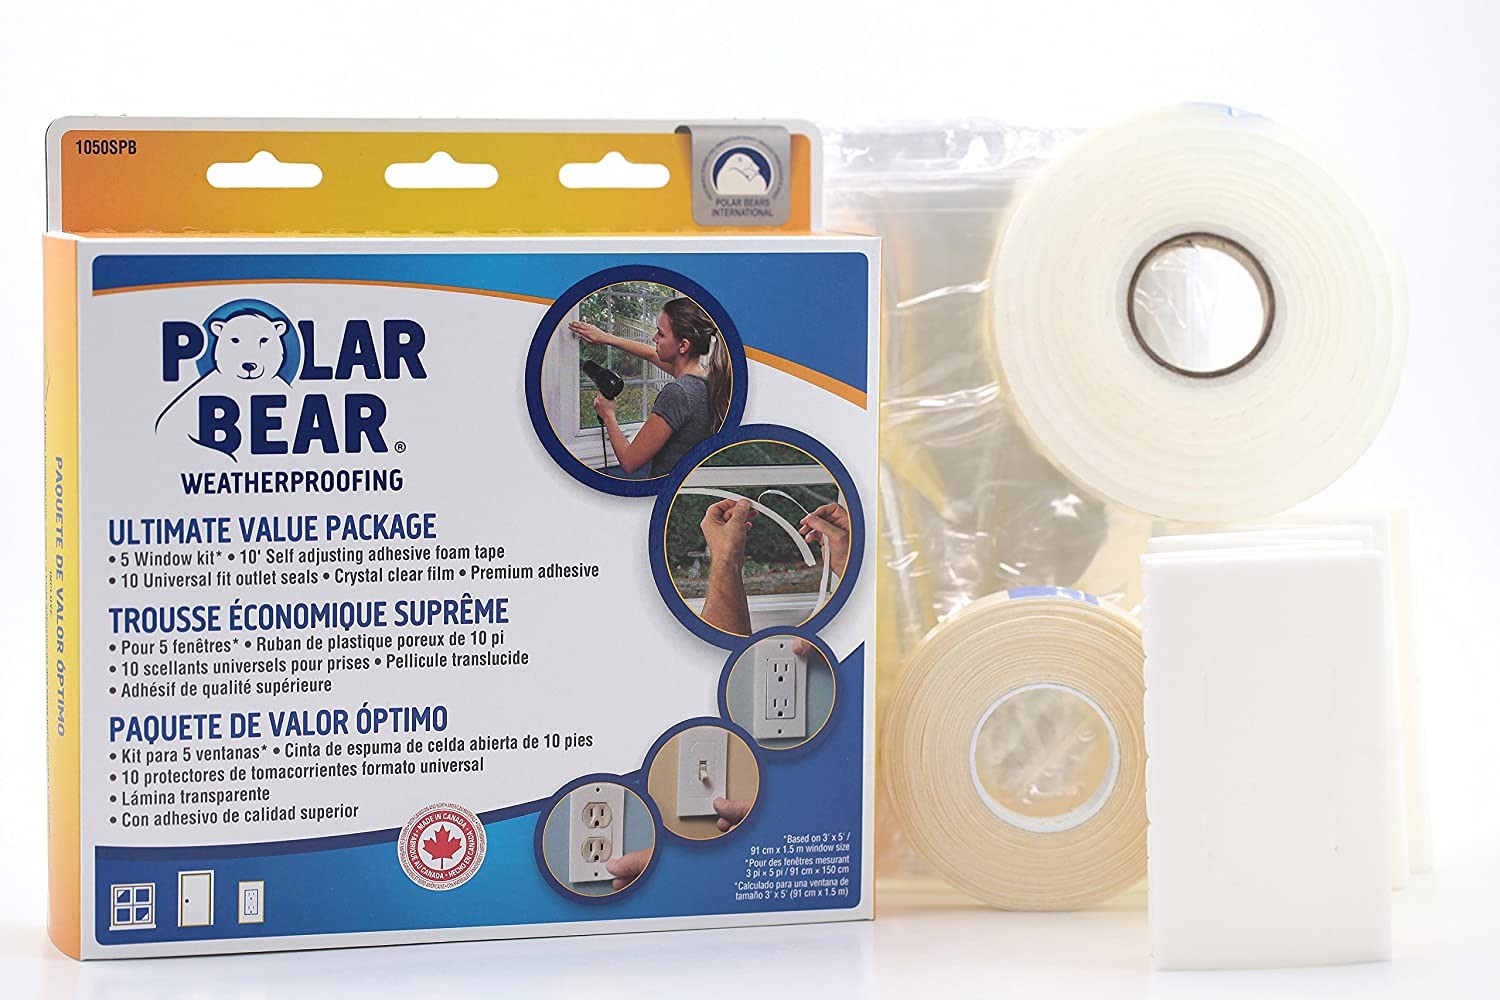 Polar Bear Weatherproofing Standard Ultimate Value Insulation Package (Value Kit) - - Amazon.com